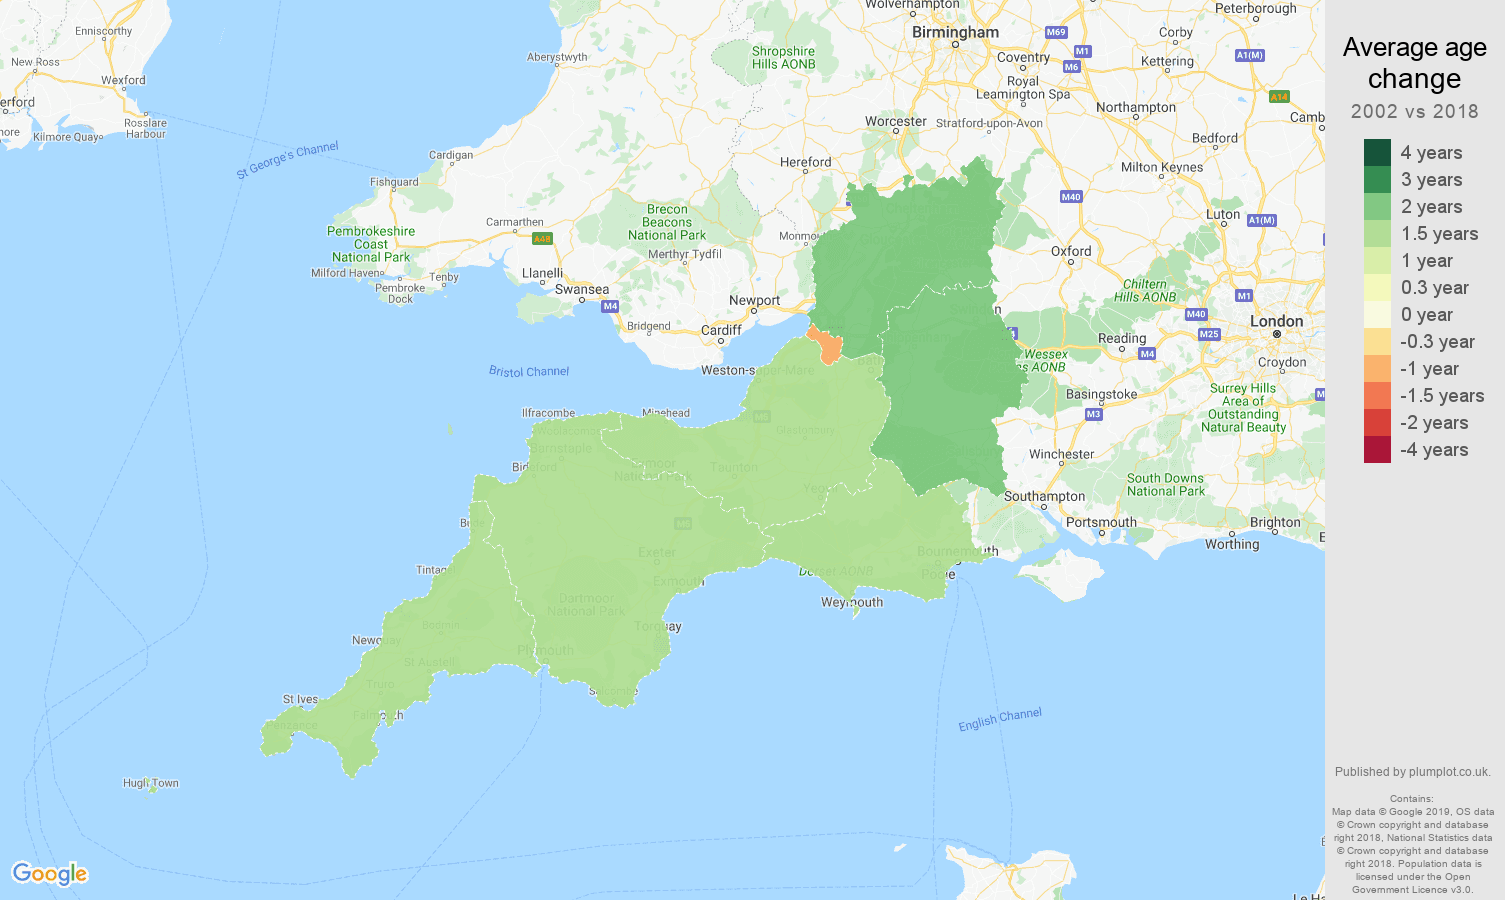 South West average age change map